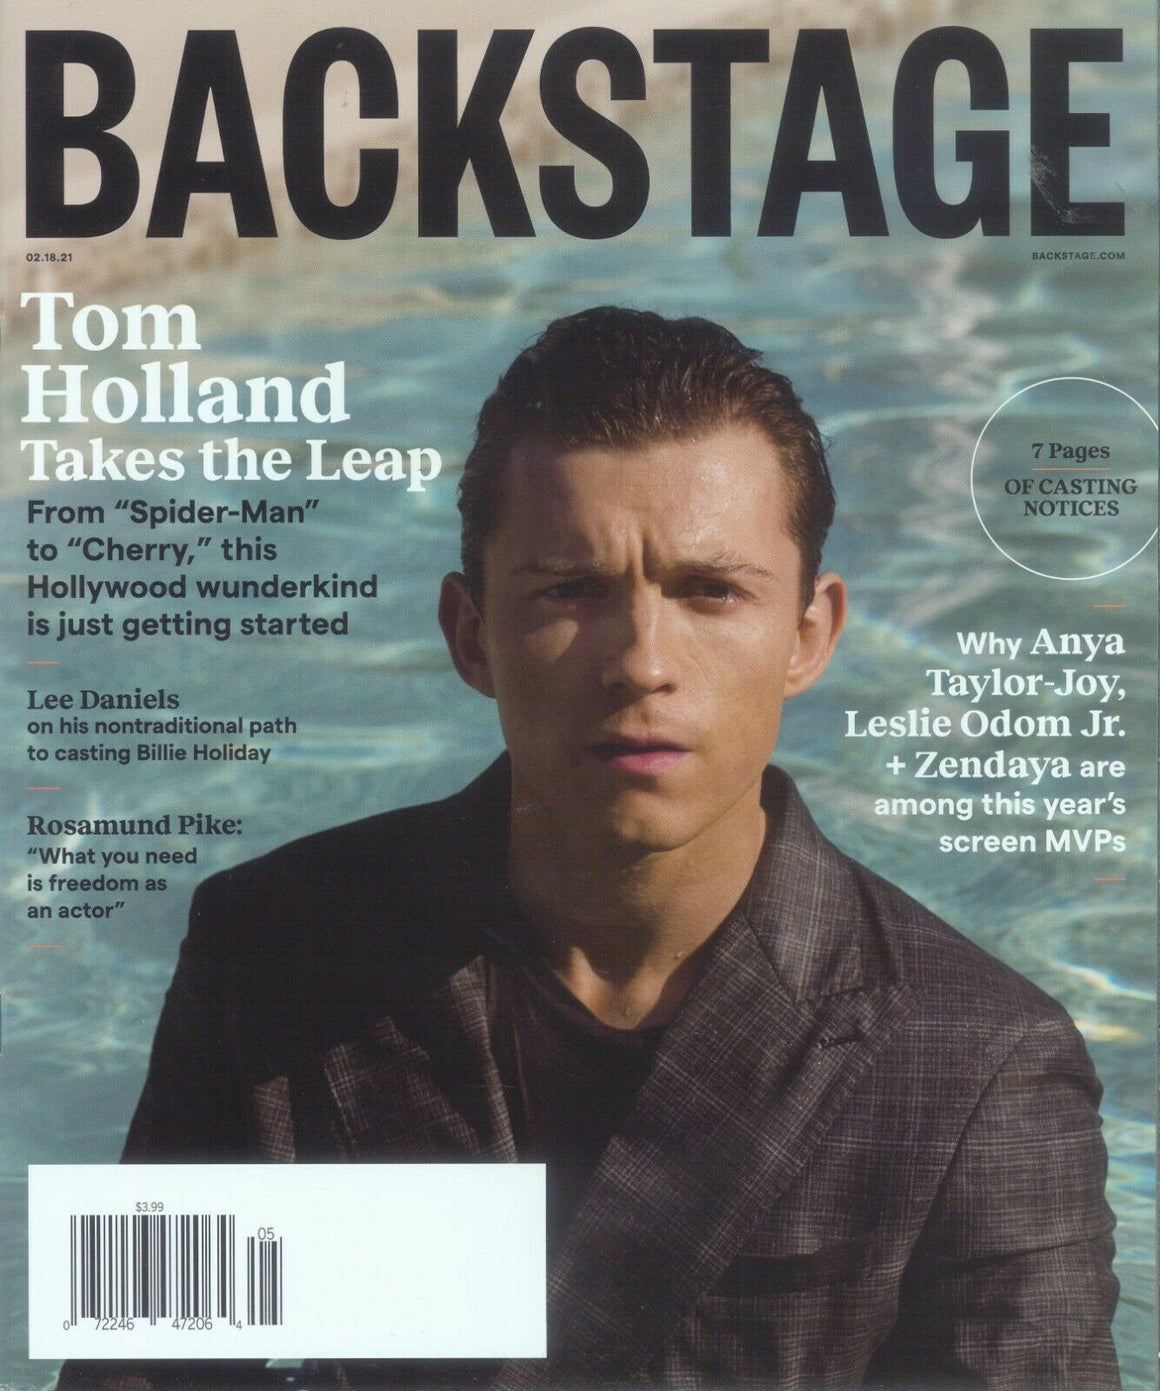 BACKSTAGE MAGAZINE - FEBRUARY 18, 2021 - TOM HOLLAND (Non US Customers Listing)